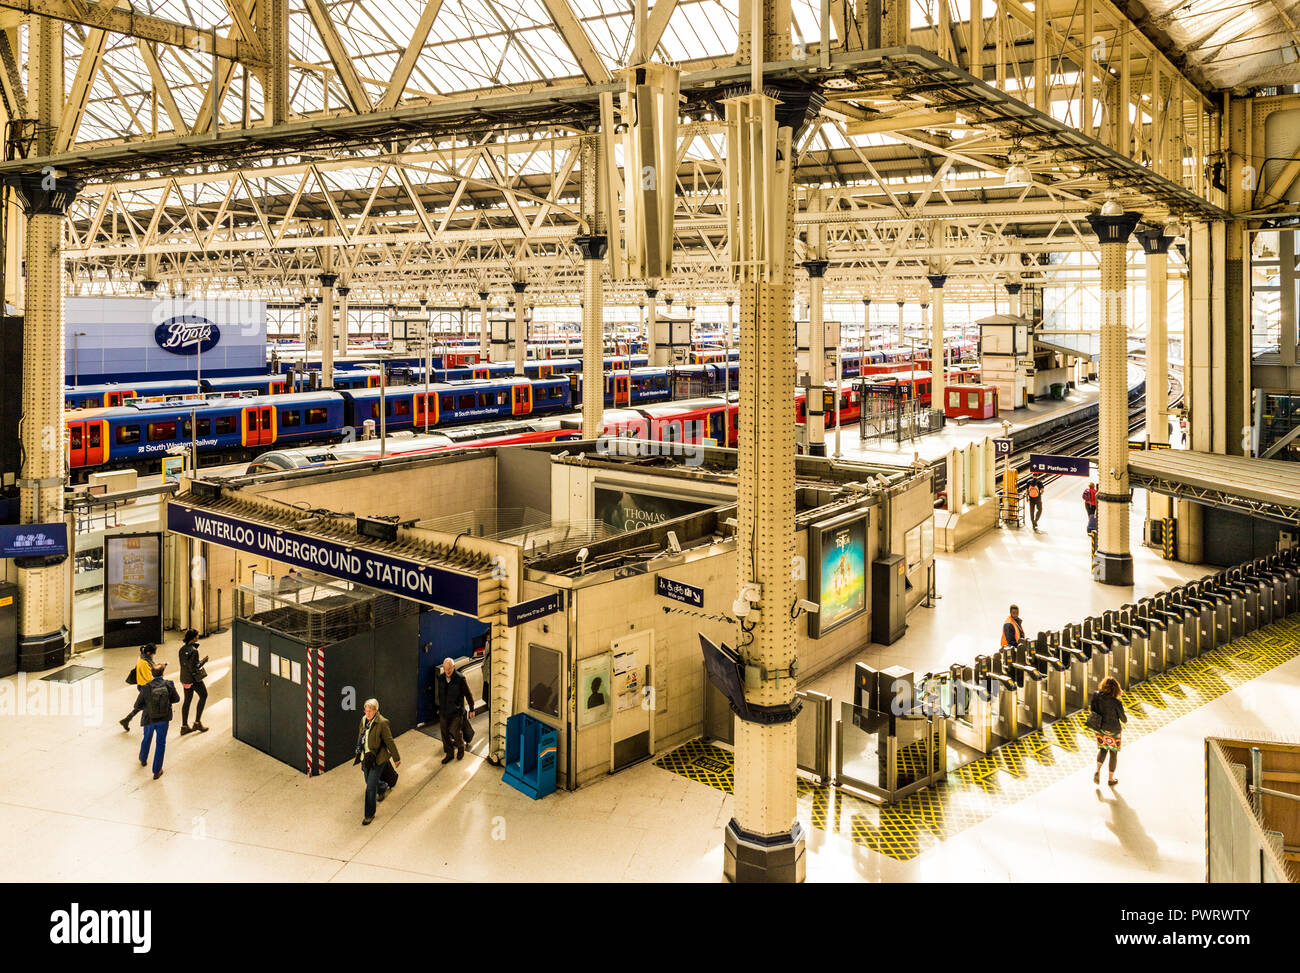 London October 2018. A view of Waterloo station in London. - Stock Image